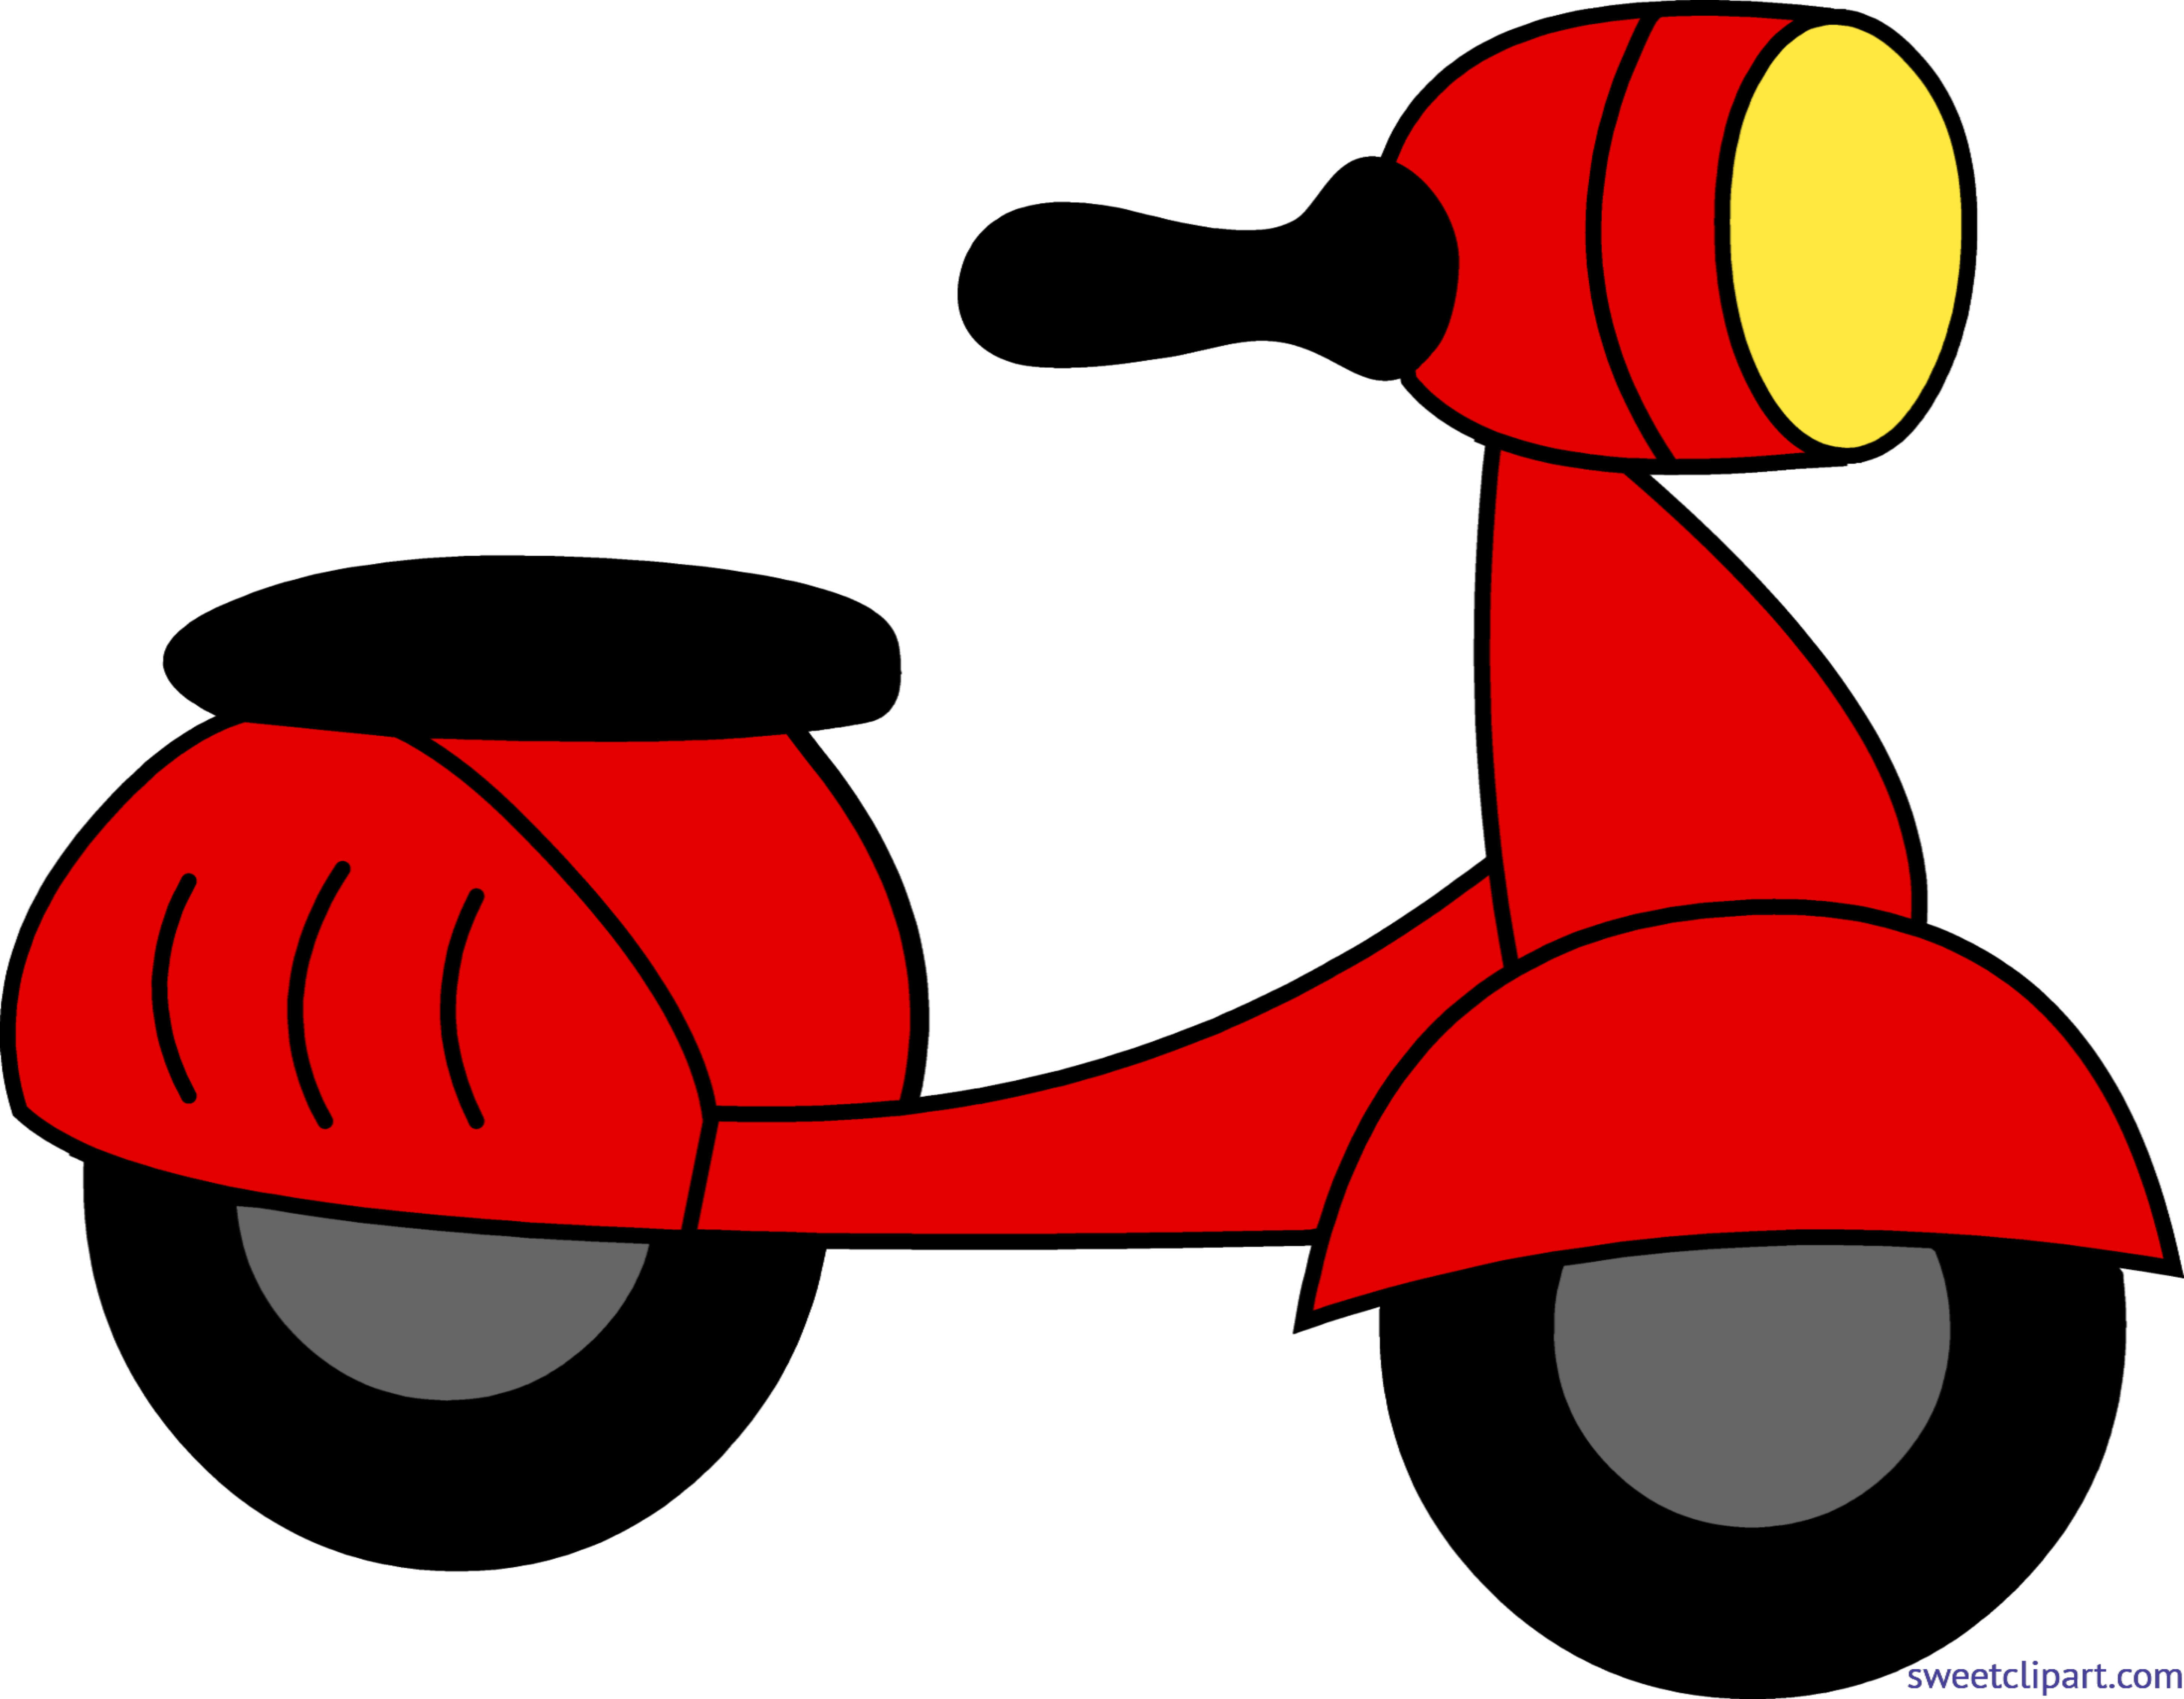 clip transparent download Scooter clipart motor vehicle. Red clip art sweet